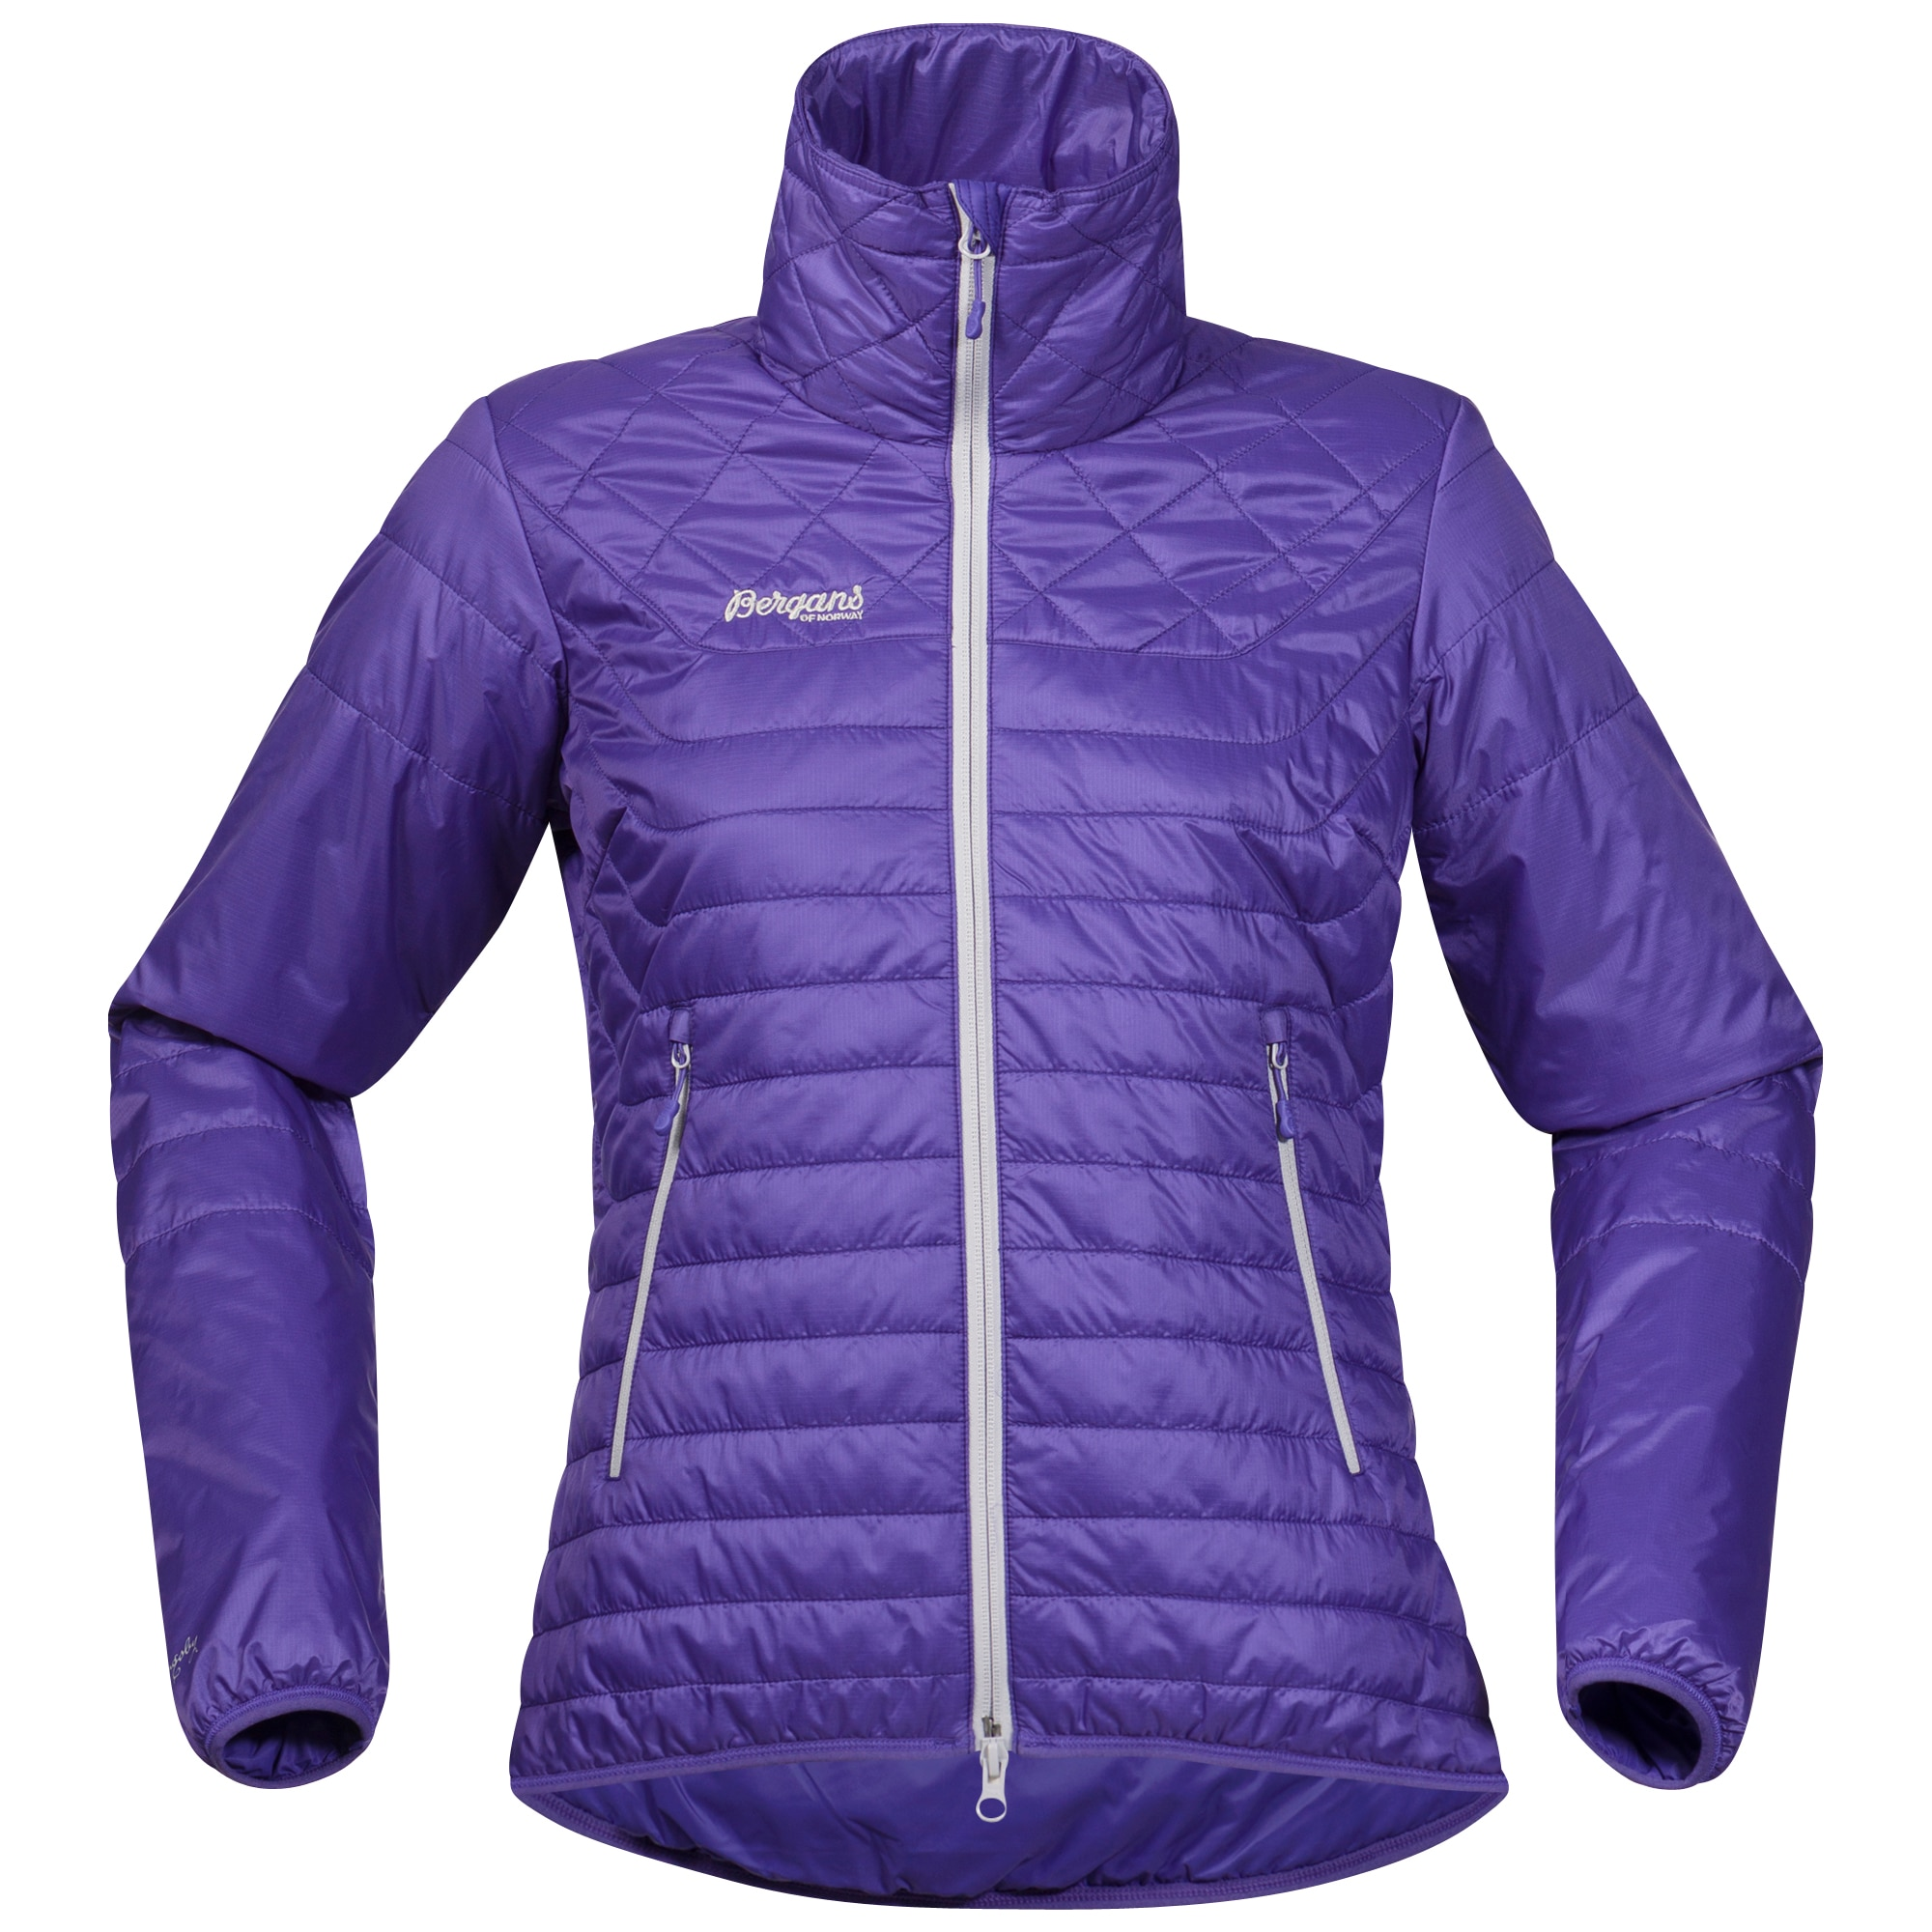 Uranostind Insulated Lady Jacket